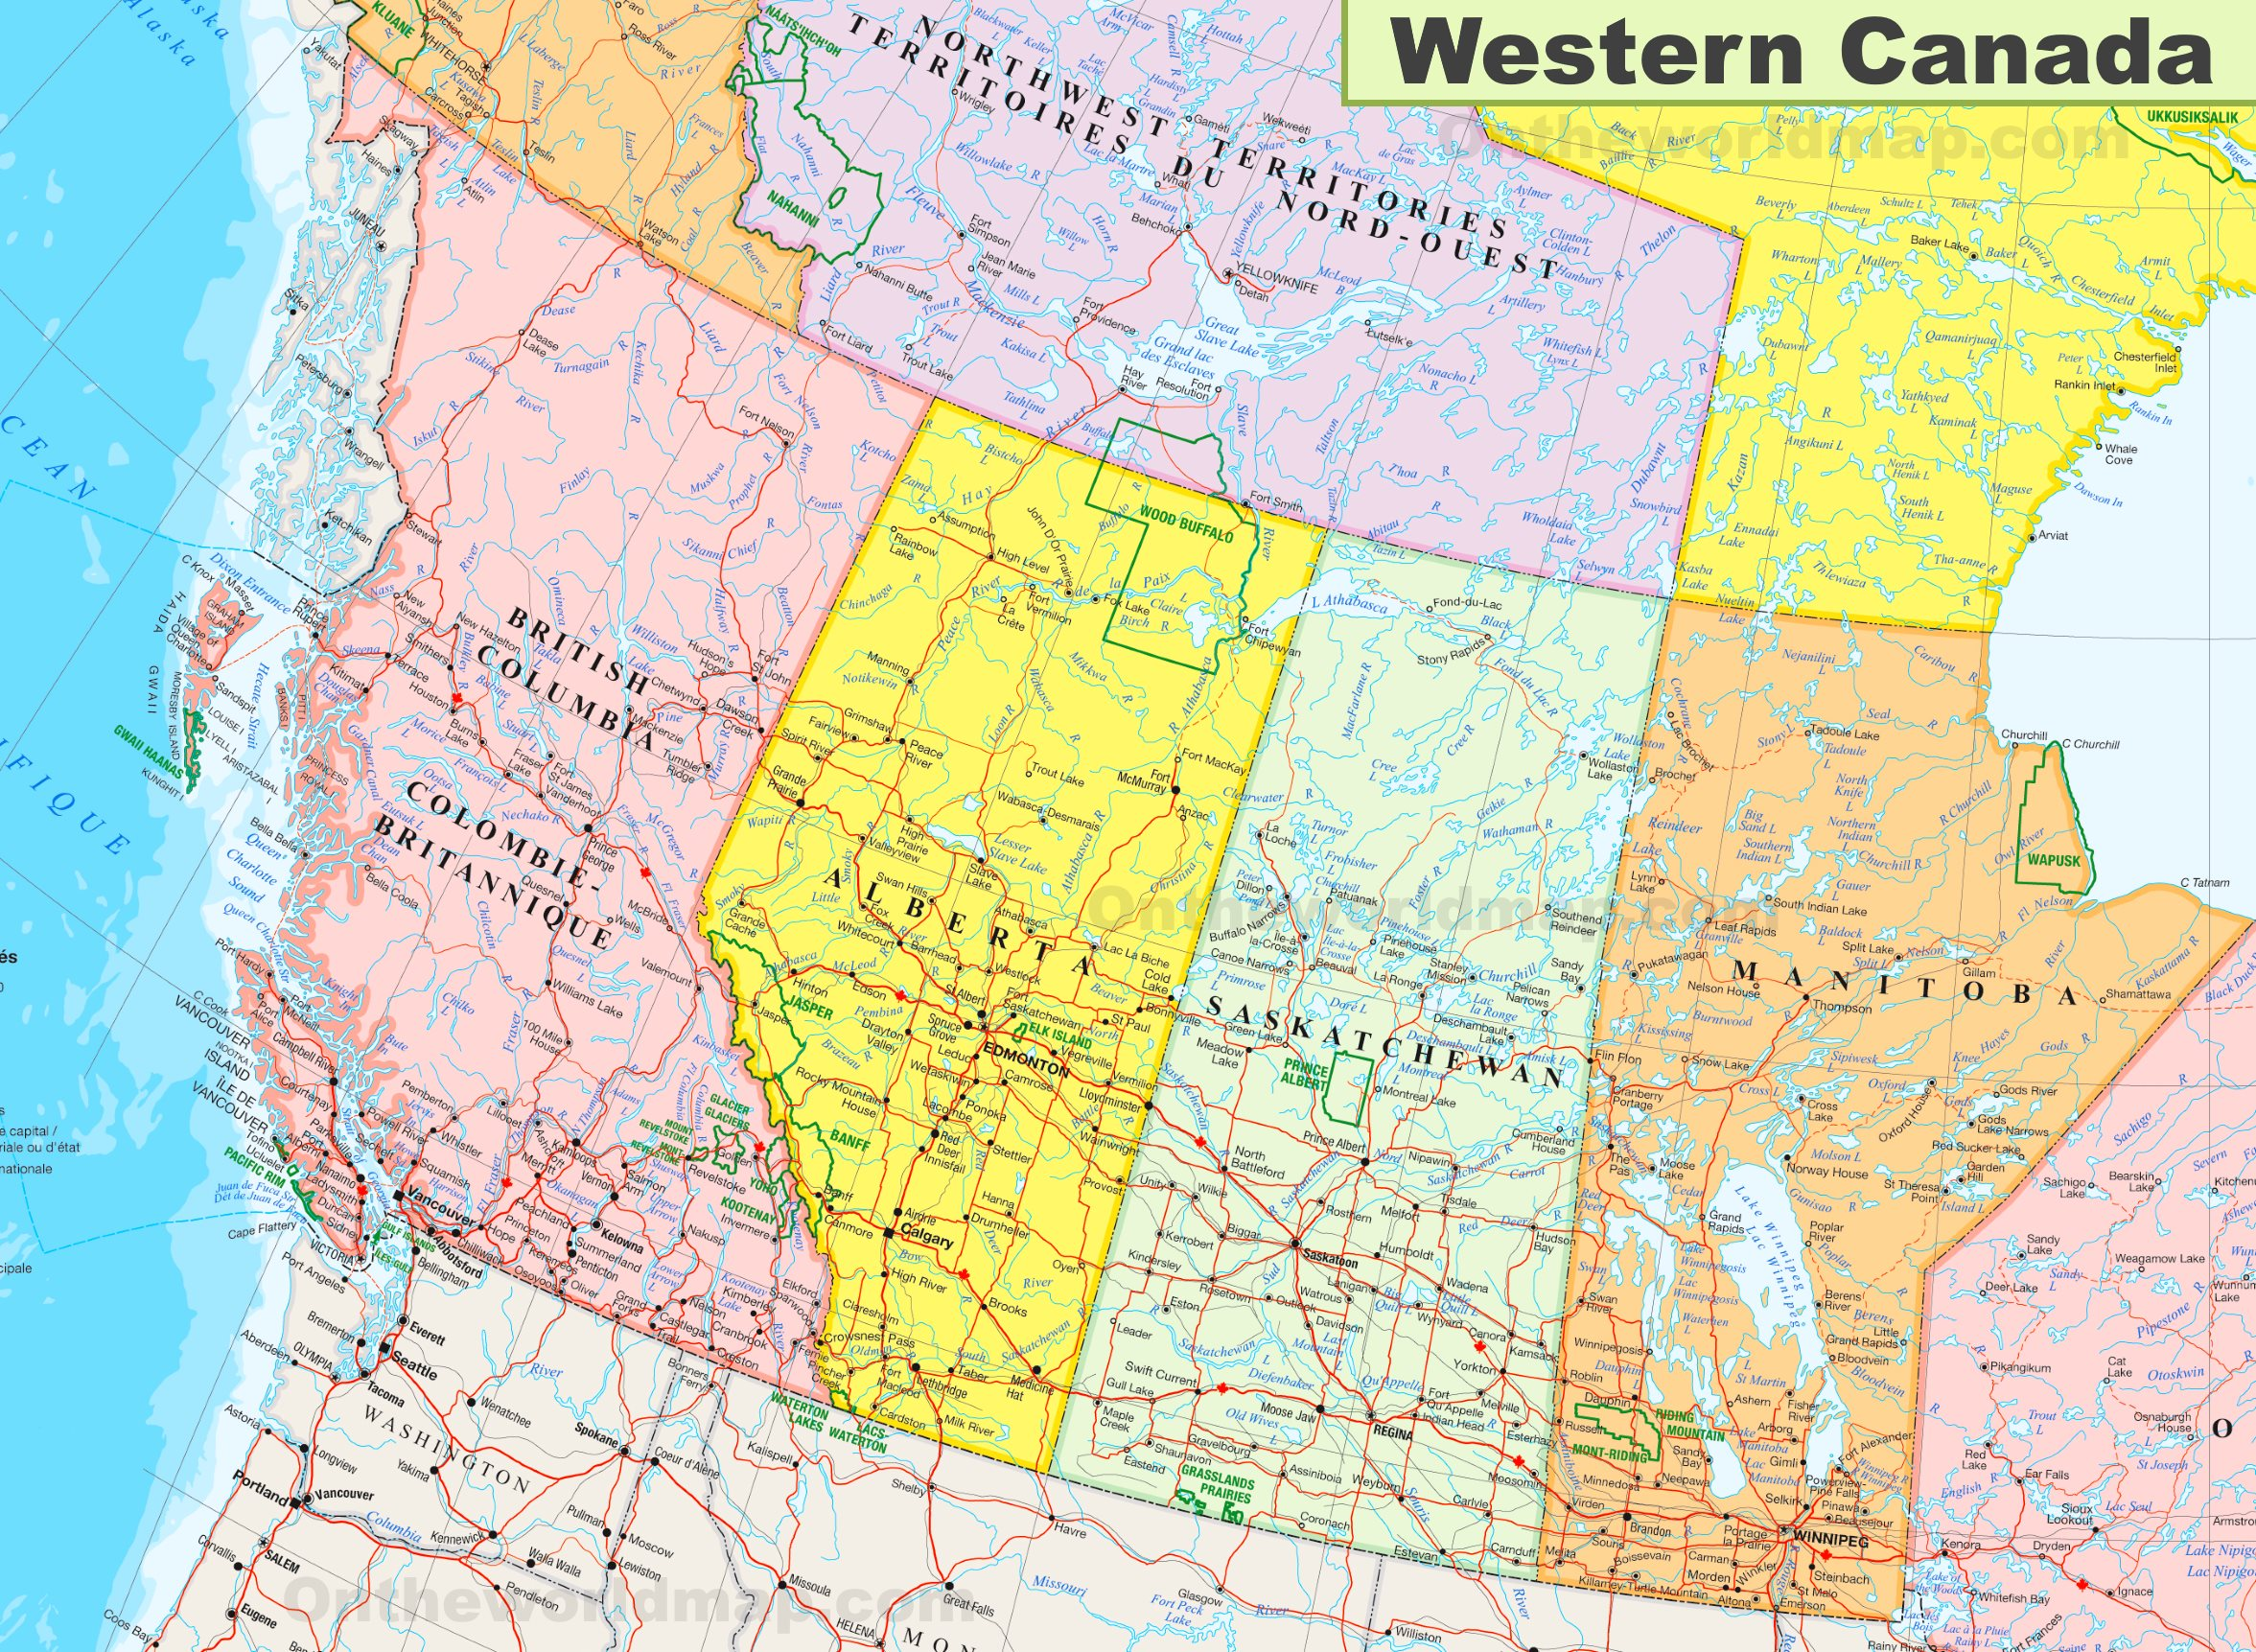 Road Map Of Western Canada Provinces Map of Western Canada